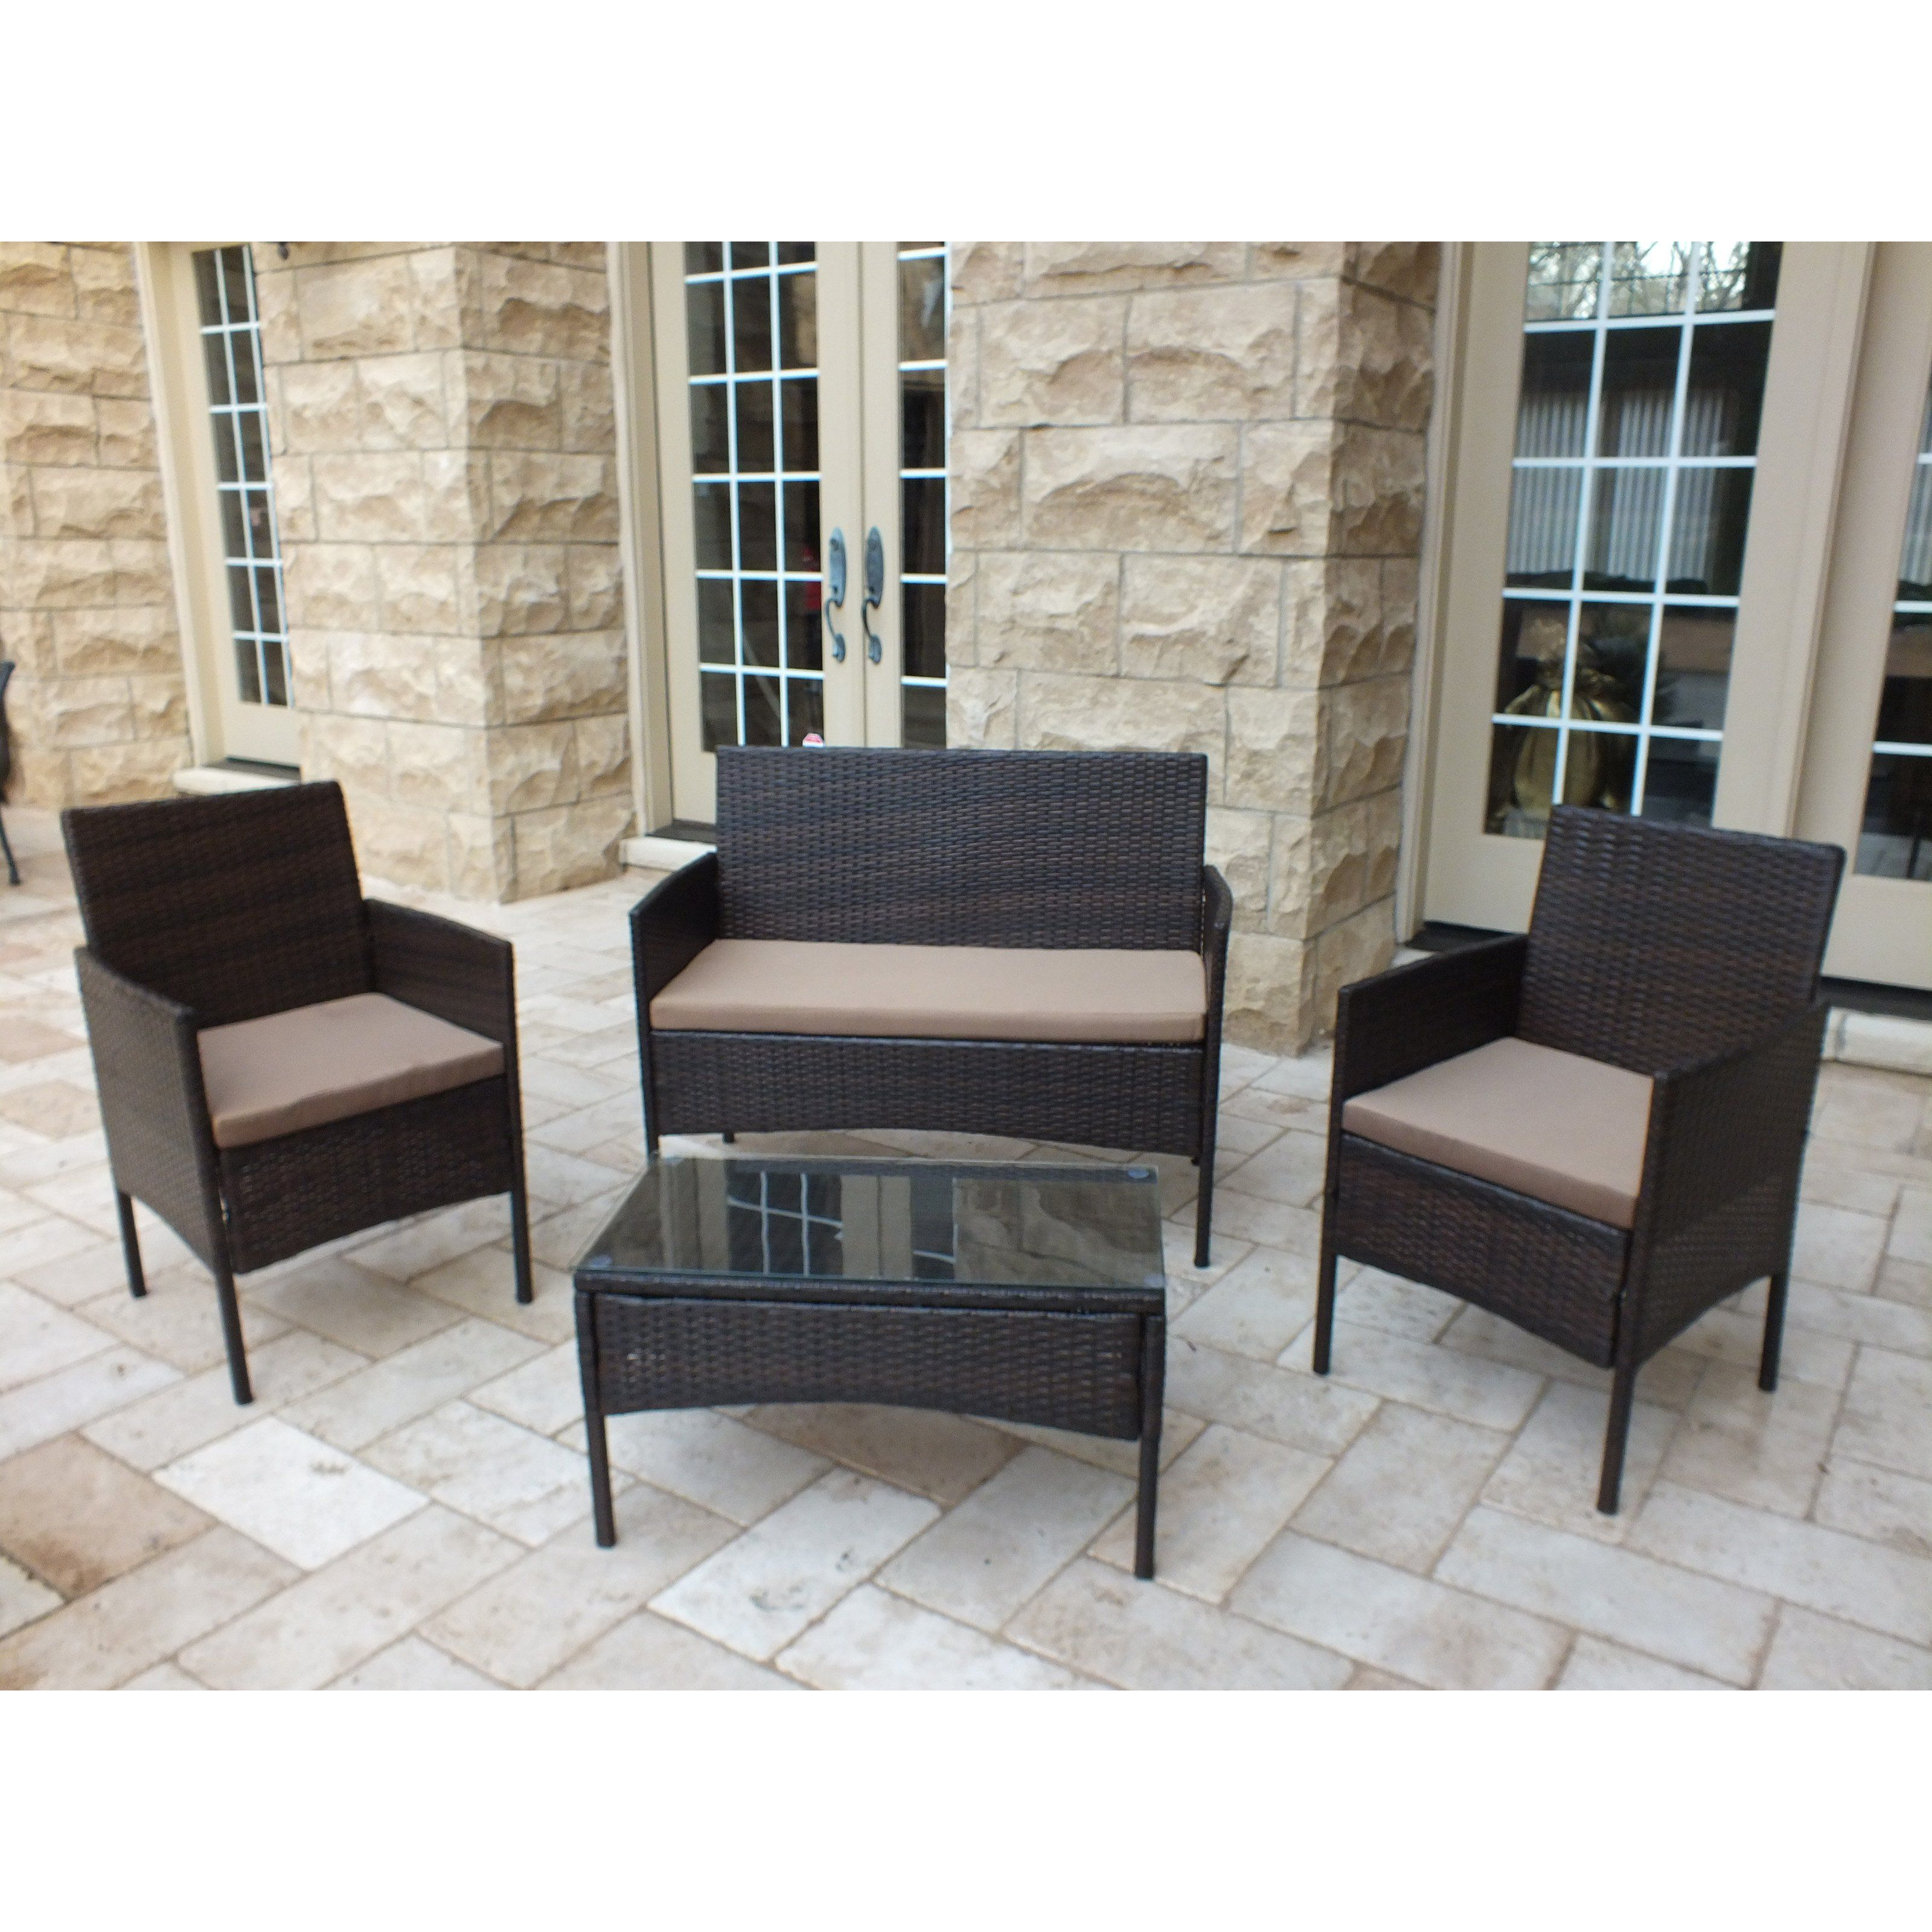 Phenomenal Outdoor Jj International Madison Wicker 4 Piece Patio Ncnpc Chair Design For Home Ncnpcorg